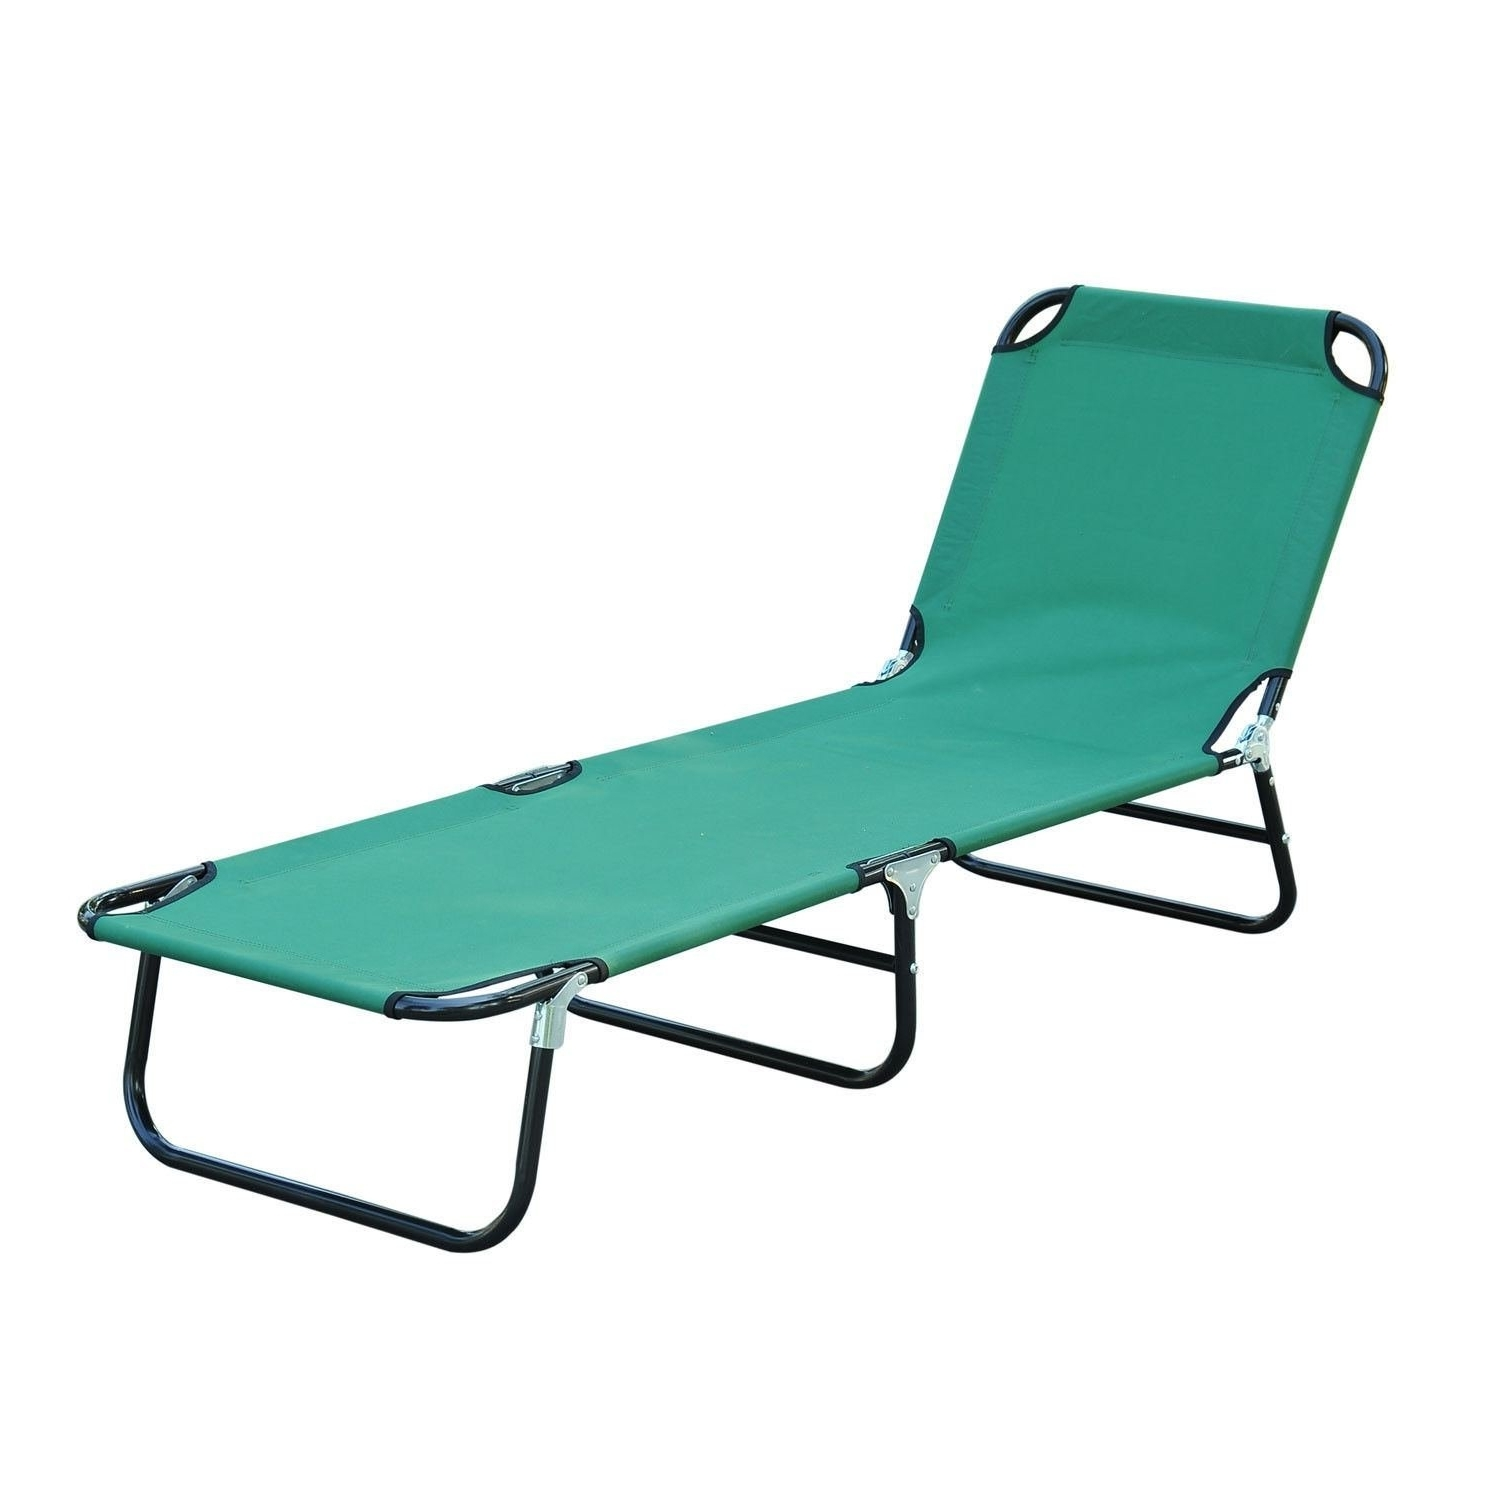 Lounge Chair : Outdoor Furniture Folding Chaise Lounge Beach Chair With Regard To Trendy Chaise Lounge Beach Chairs (View 14 of 15)